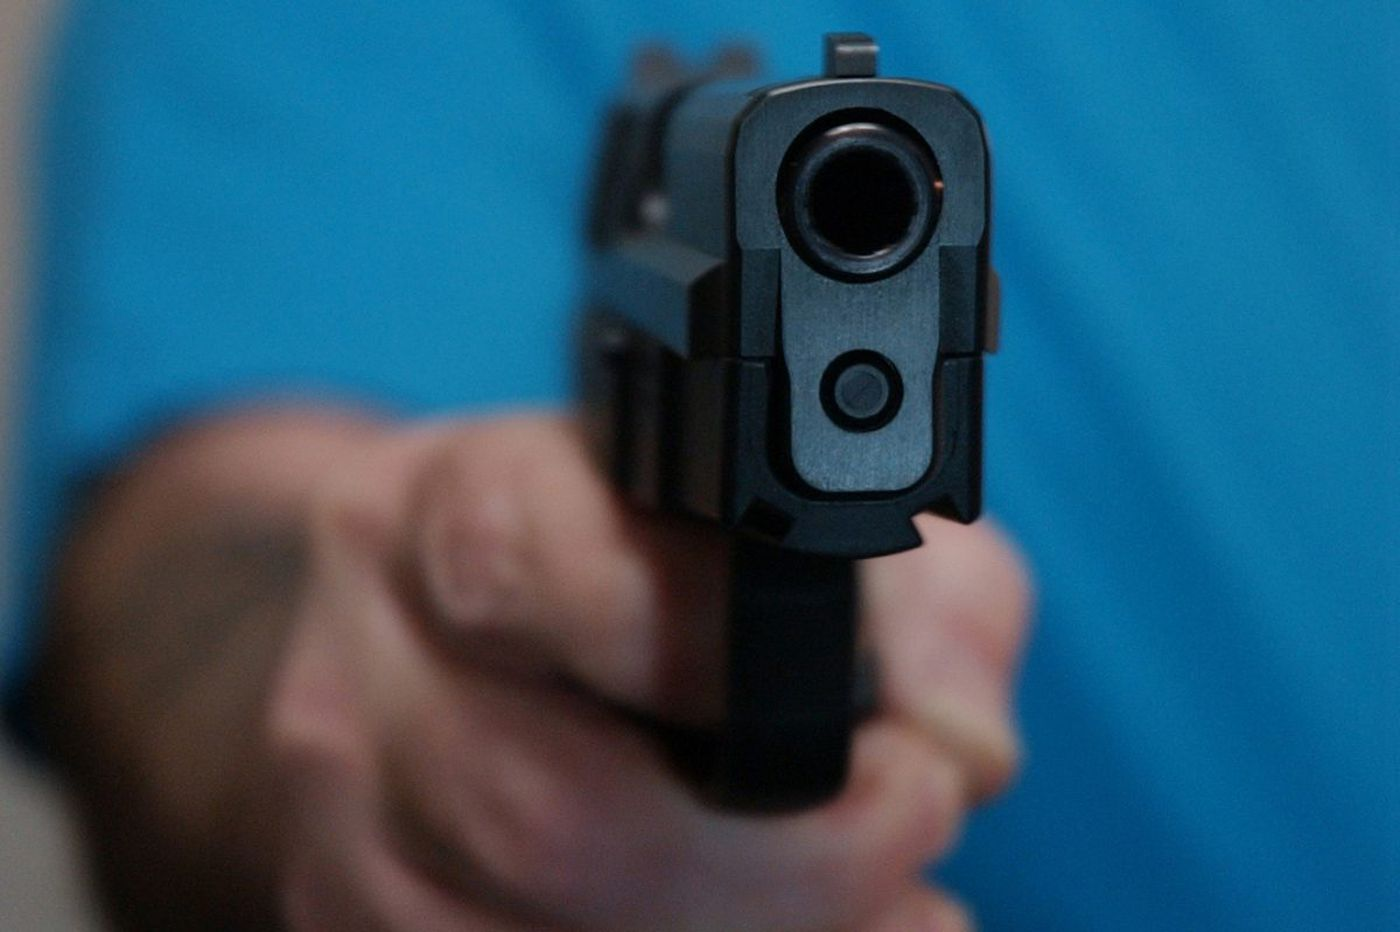 West Philly dice game ends in fatal shooting